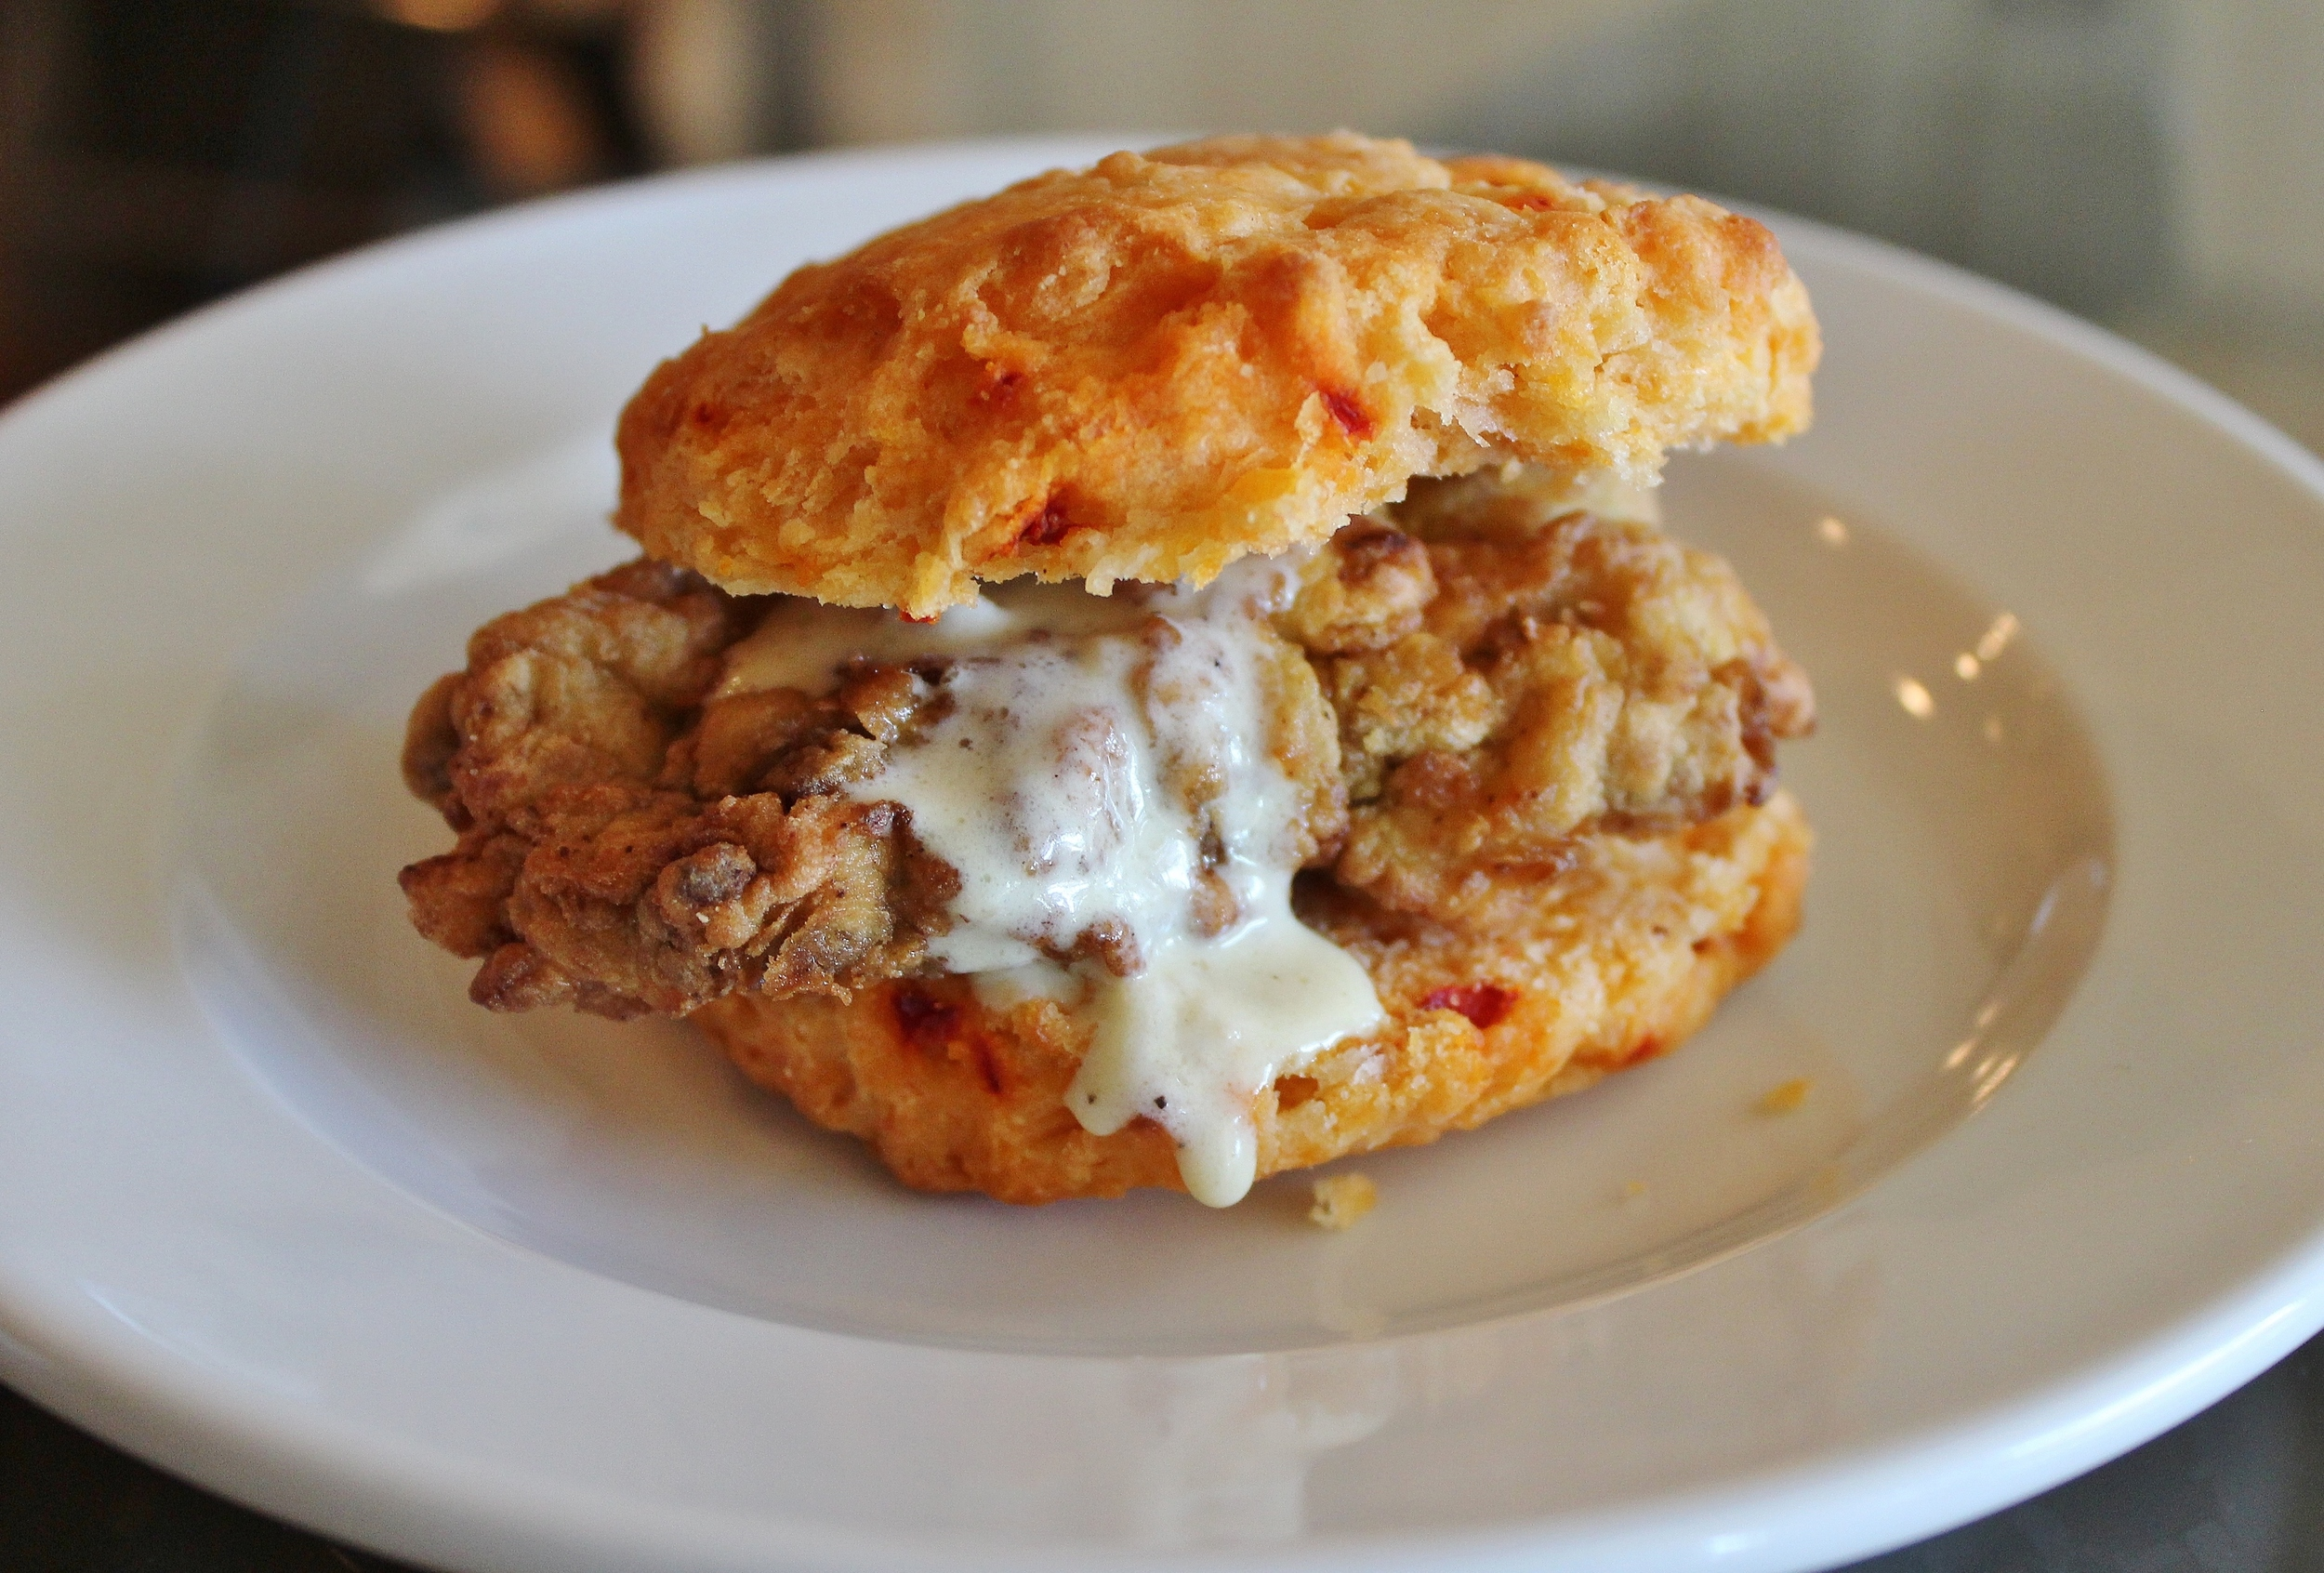 Chicken Fried Steak sliders on Pimento Cheese Biscuits